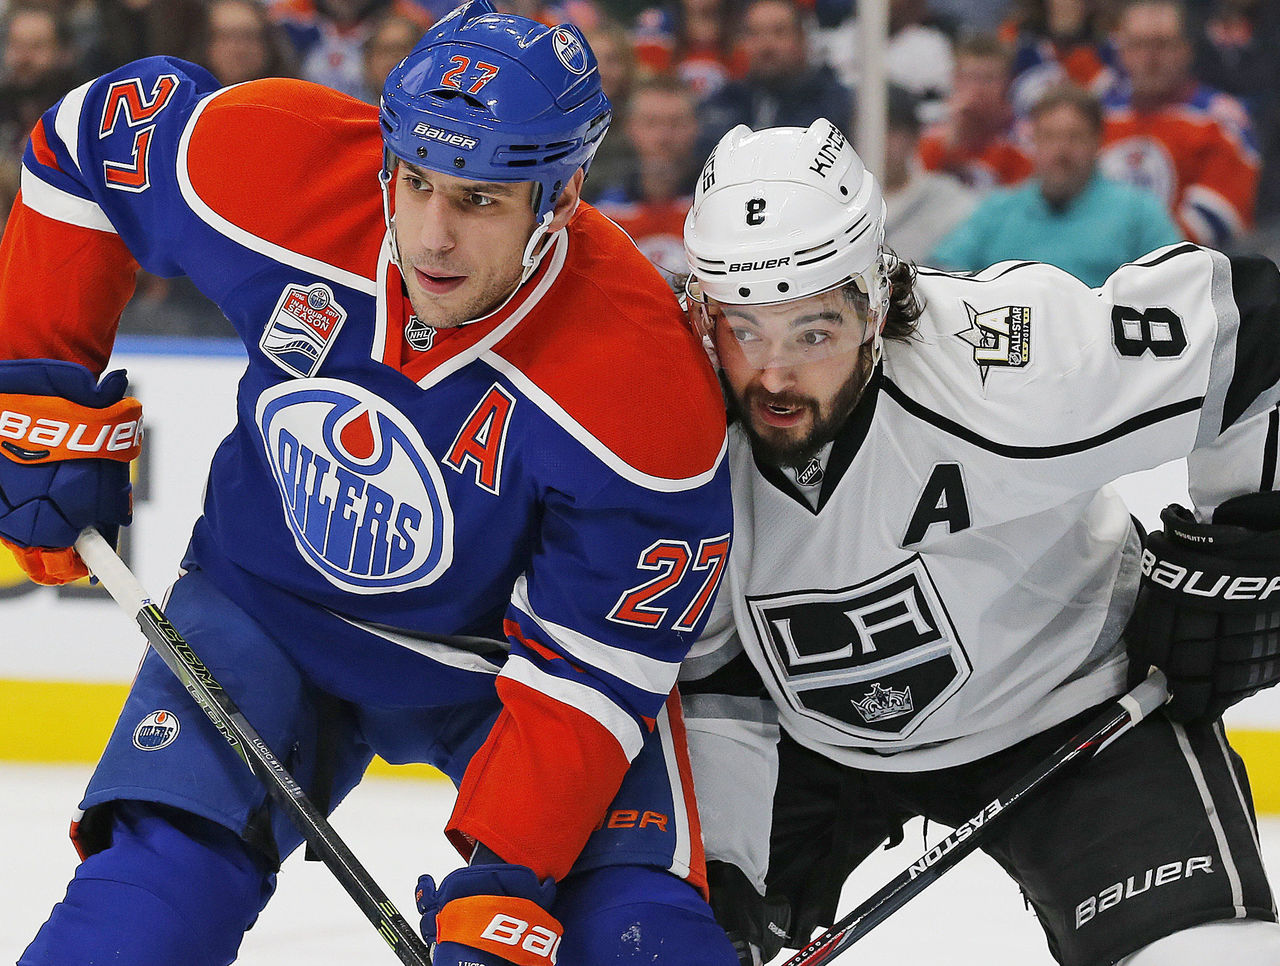 Cropped 2016 12 30t025719z 169536664 nocid rtrmadp 3 nhl los angeles kings at edmonton oilers